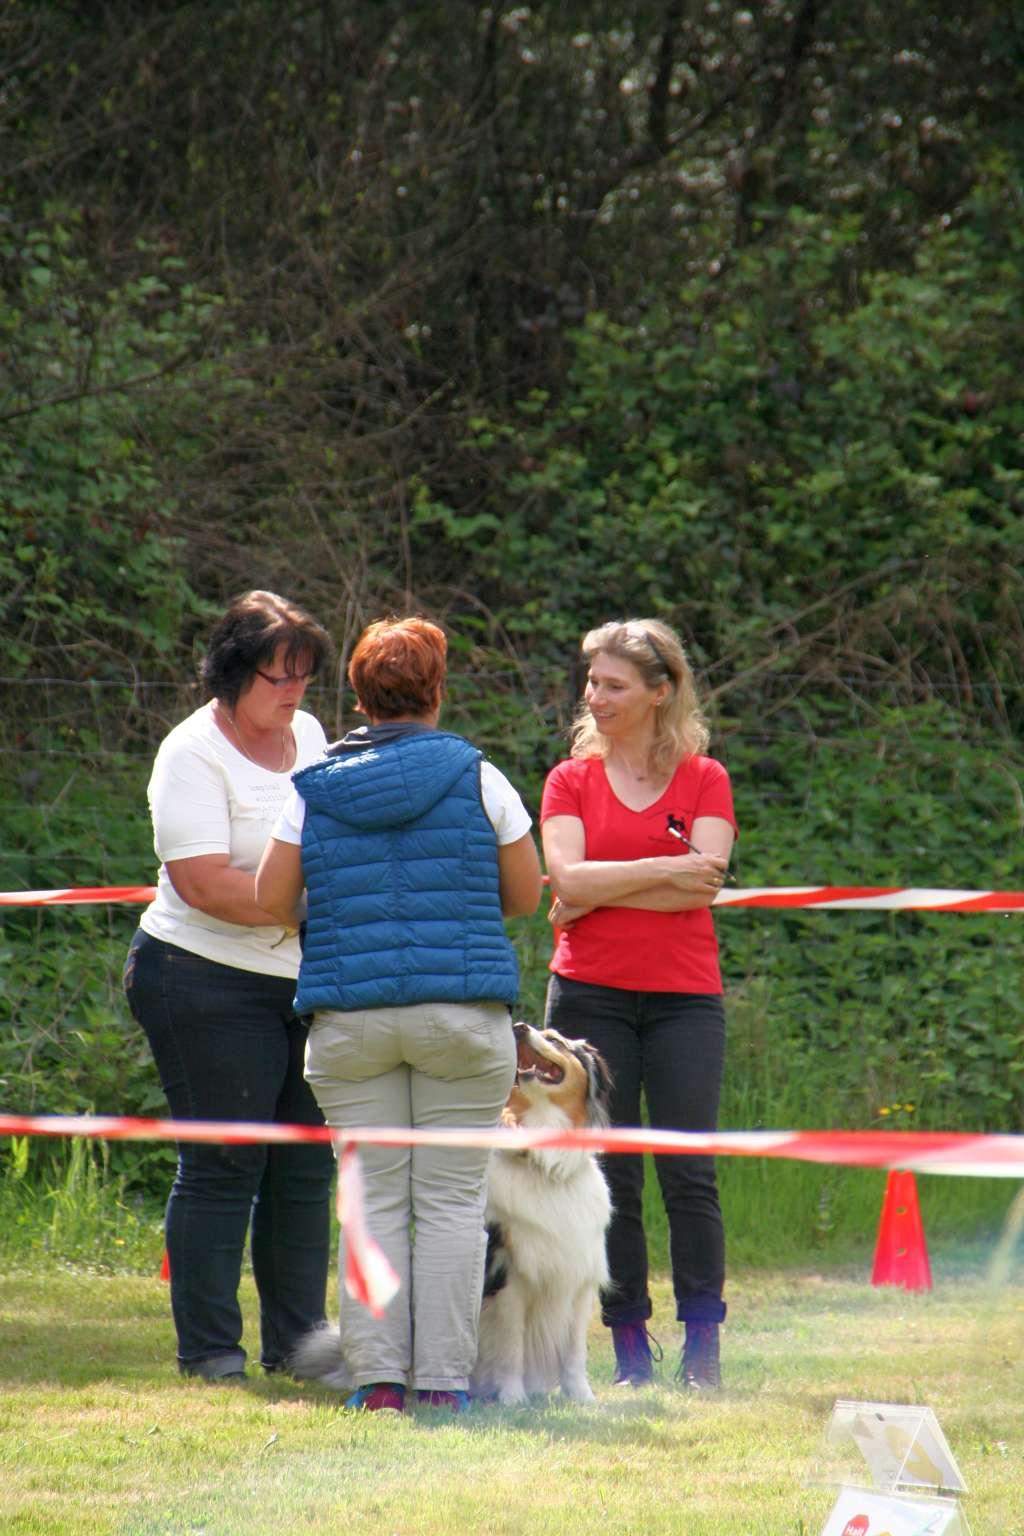 Rally_Obedience_Yvonne_2015_05_17_19